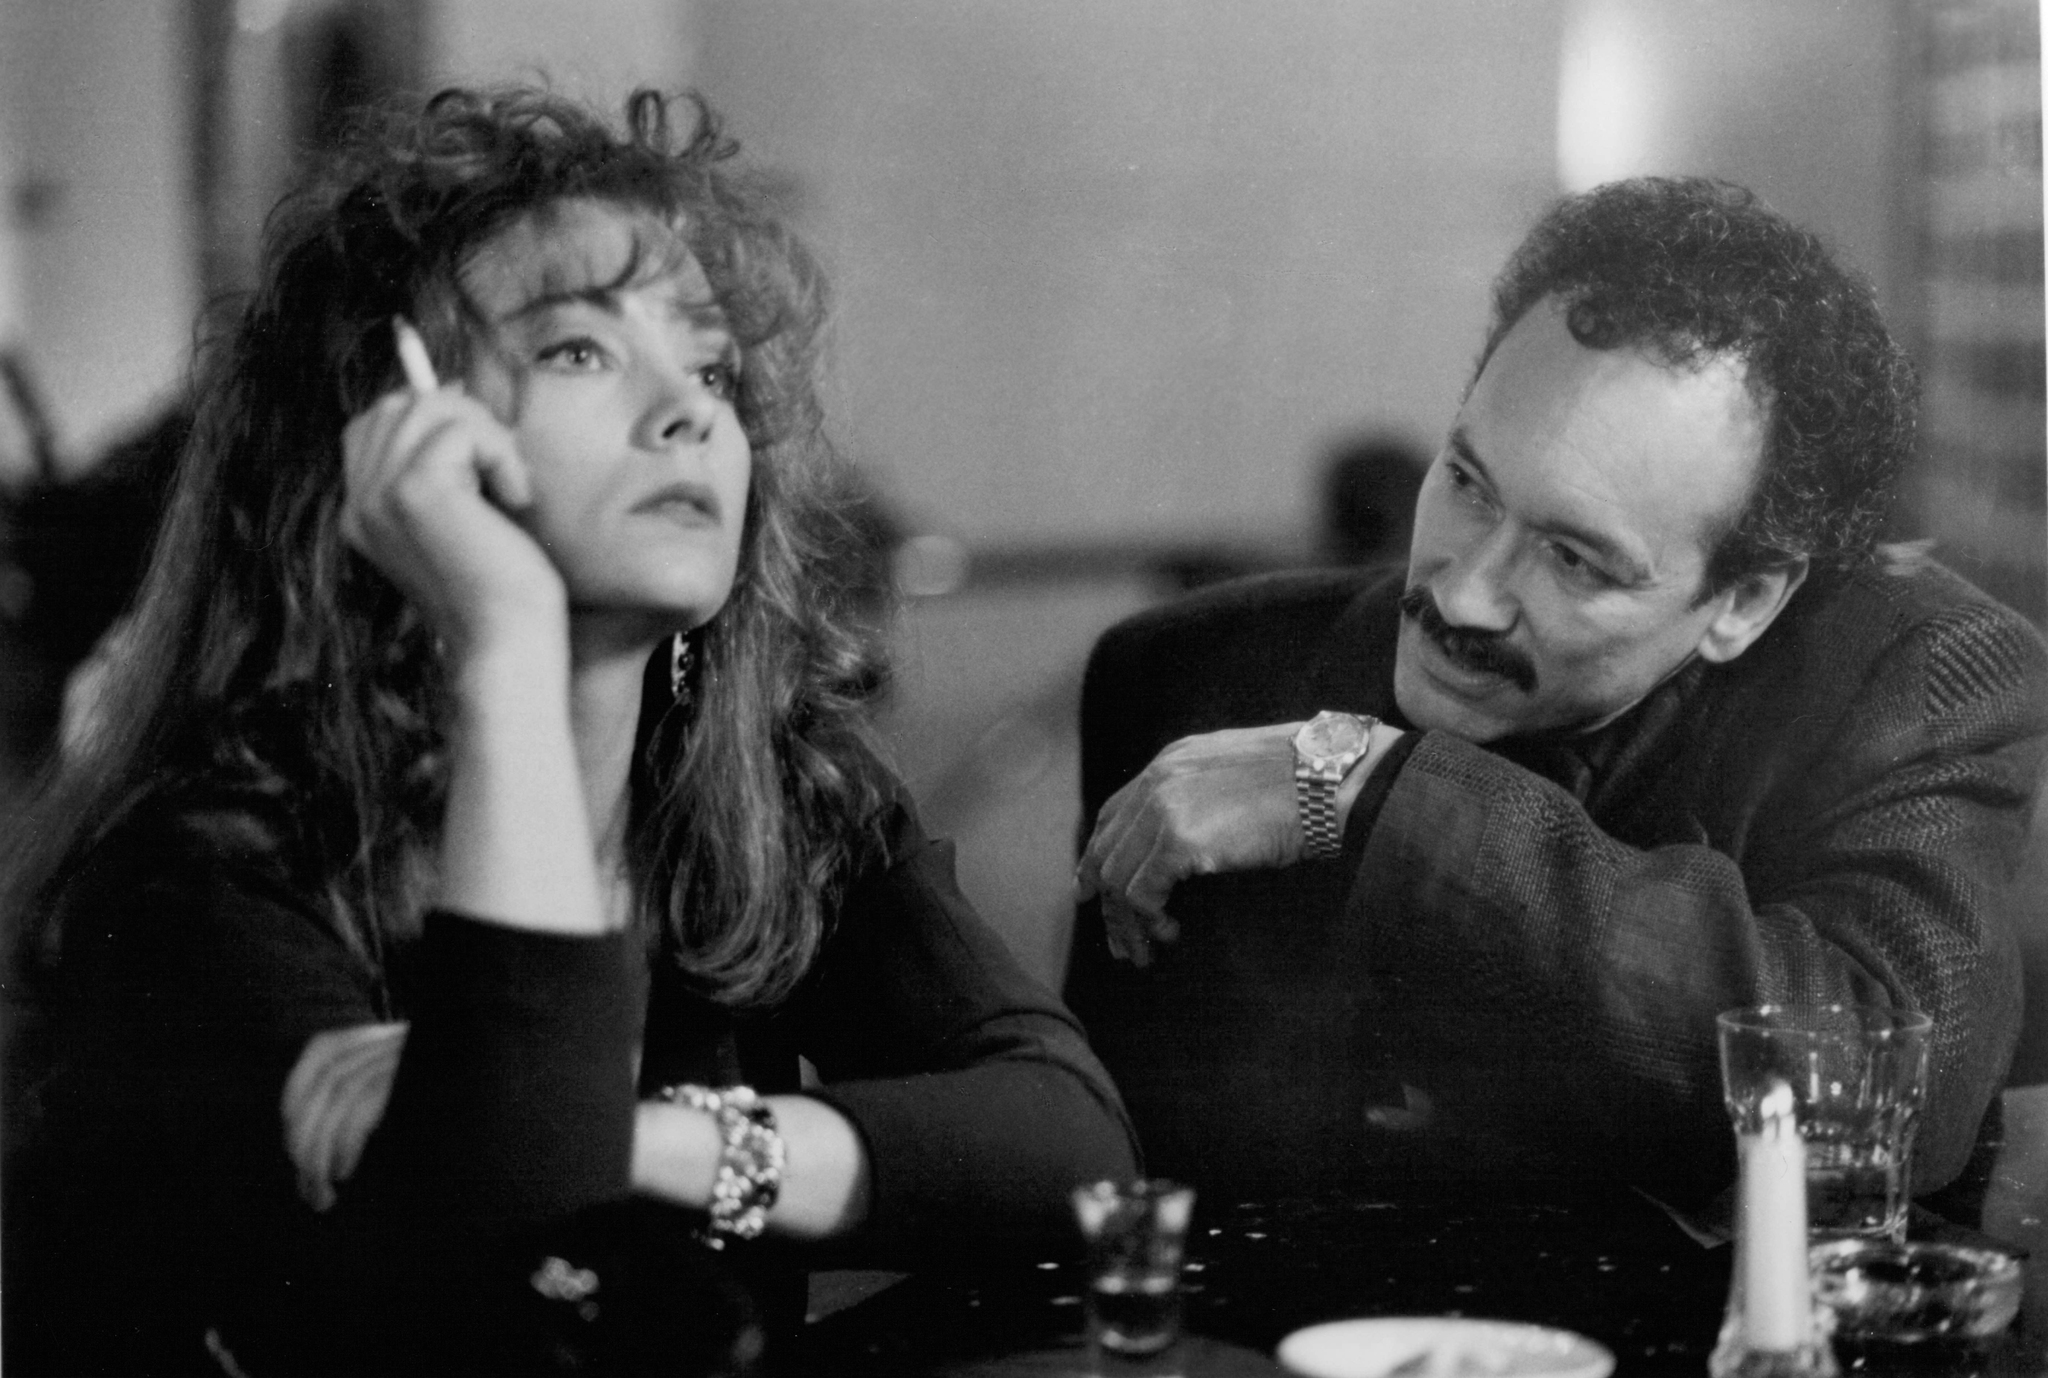 Theresa Russell in Impulse (1990)